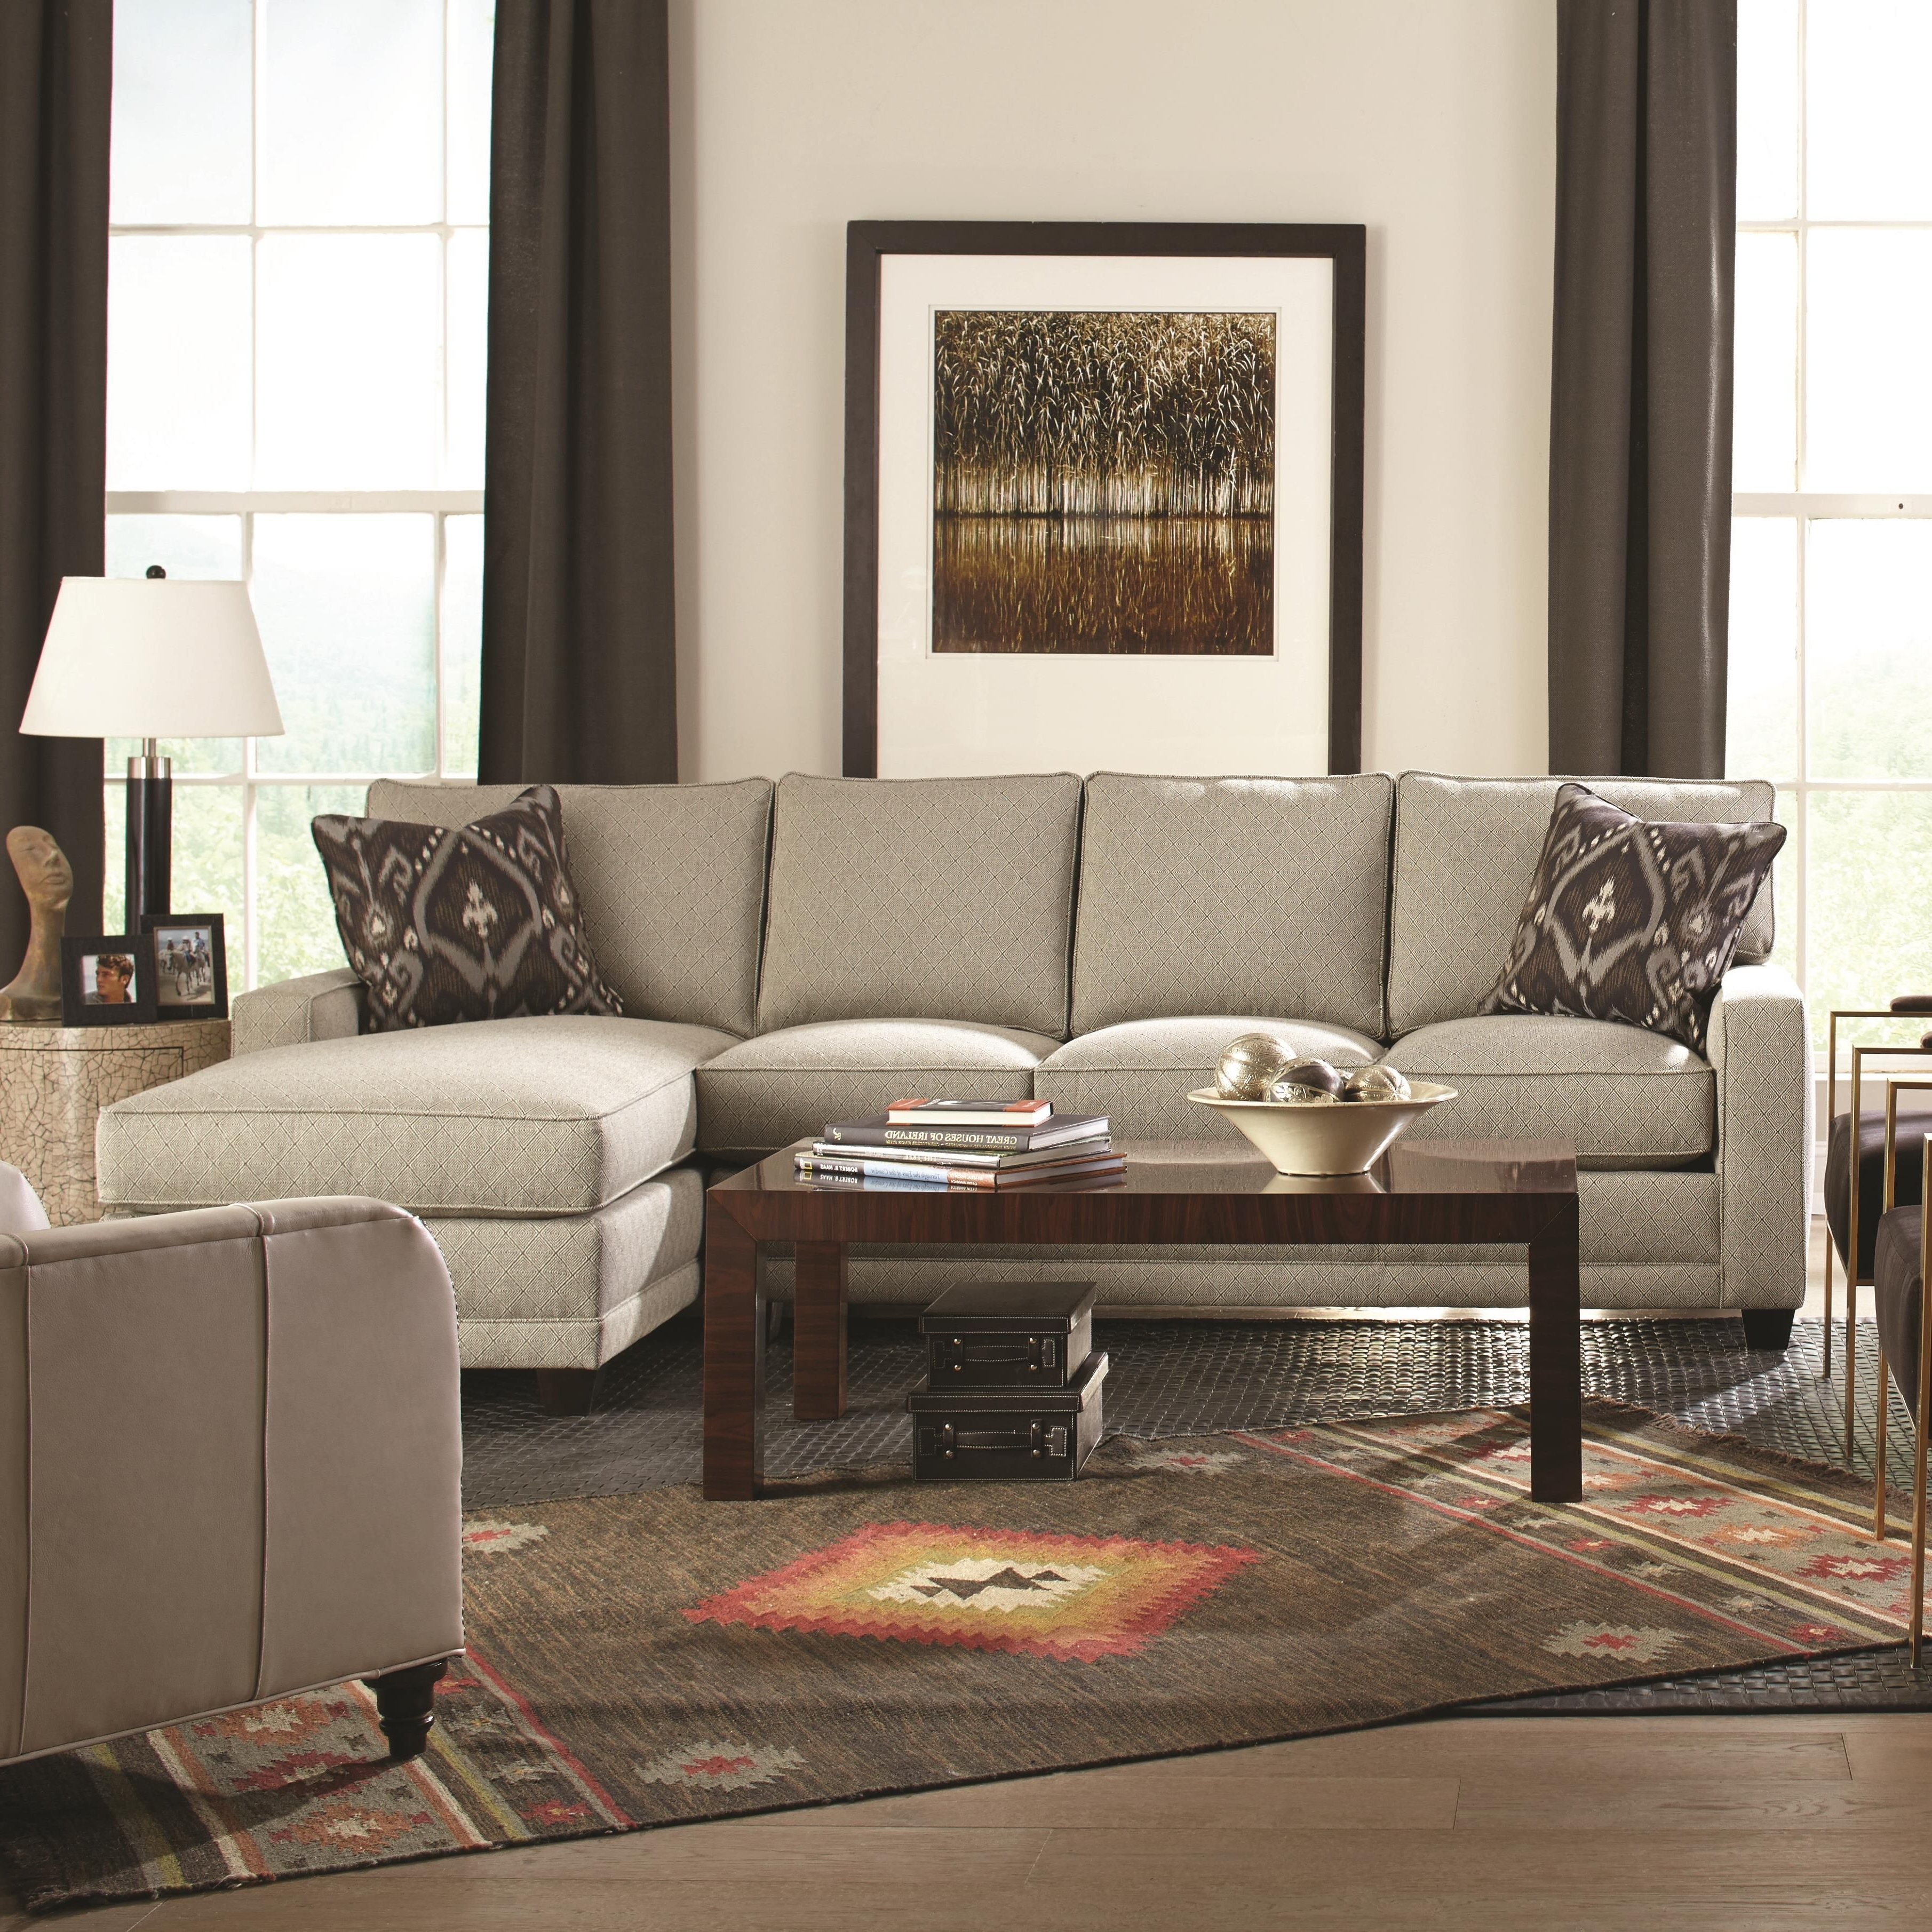 My Style Contemporary Sectional Sofa With Chaiserowe (View 12 of 15)